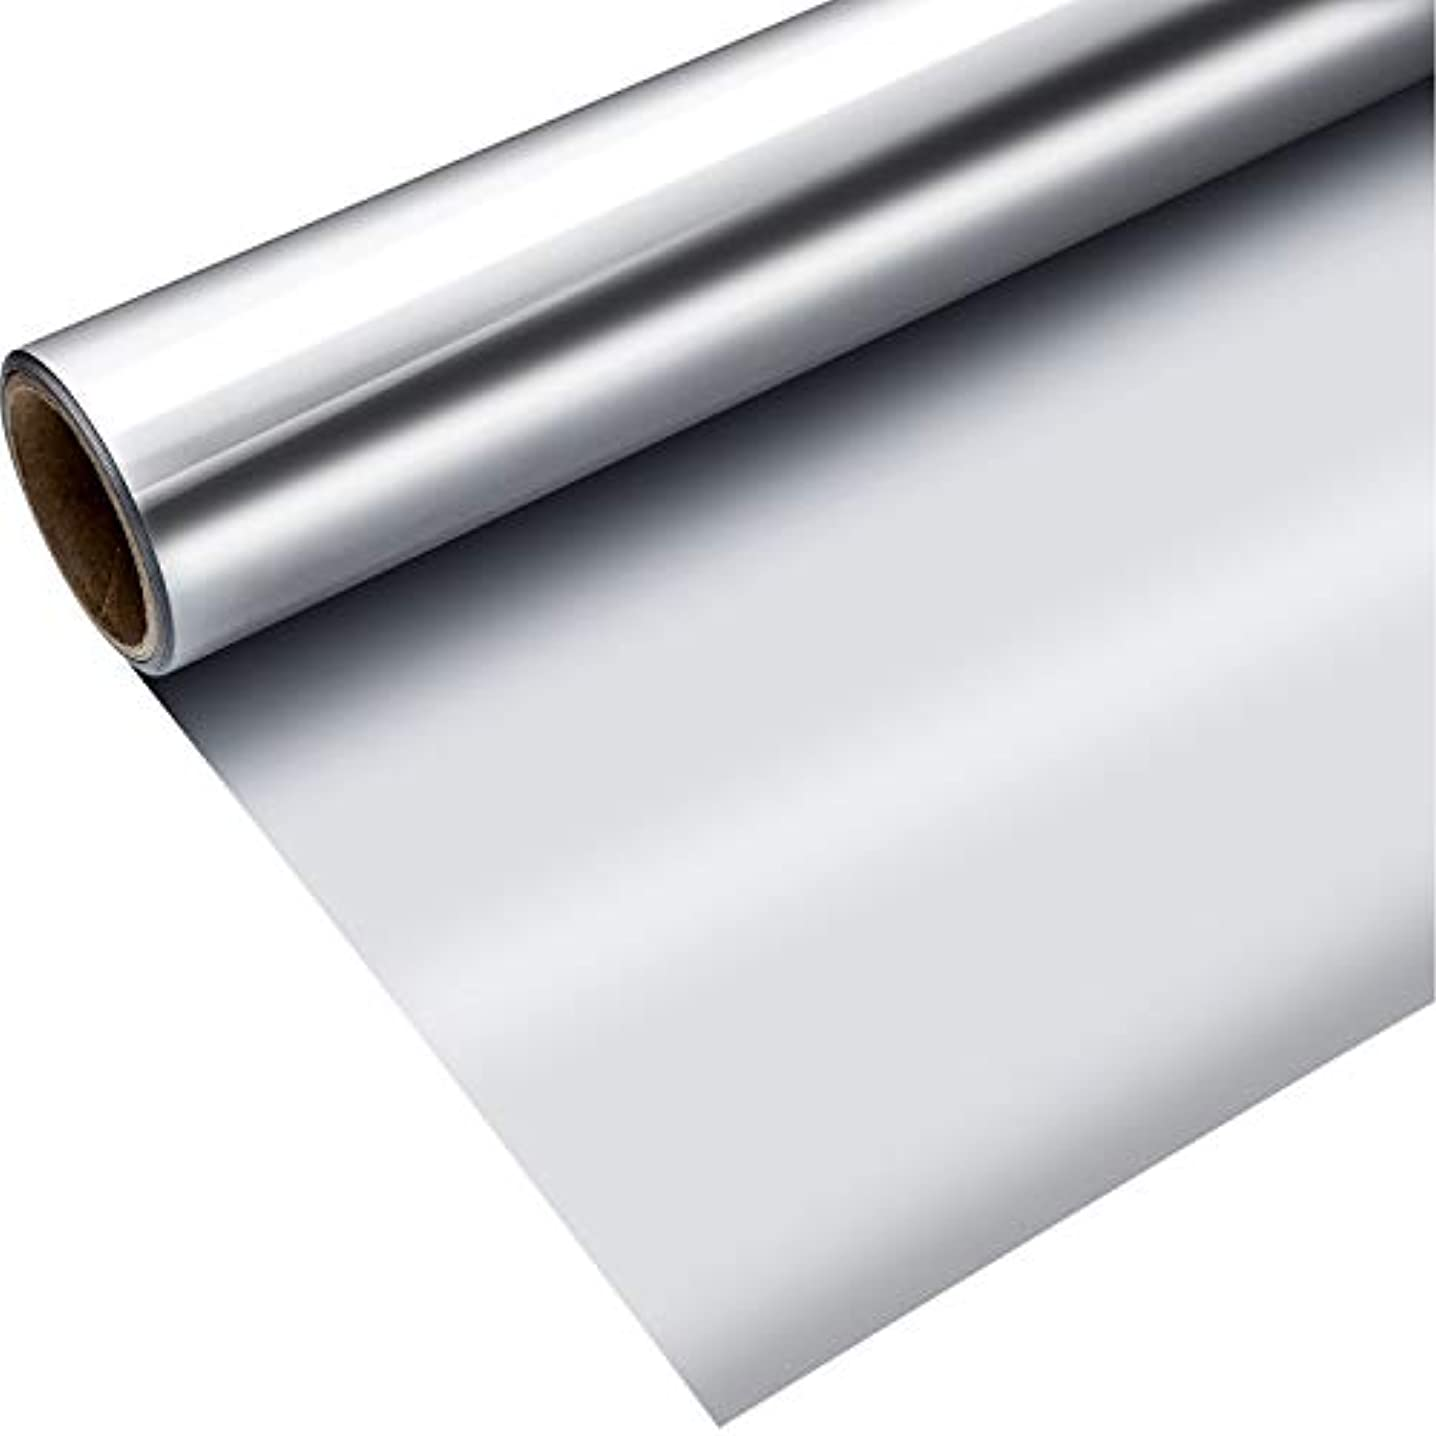 Blulu 1 Roll Heat Transfer Vinyl 12 Inch by 5 Feet for T-Shirts, Hats, Clothing, Iron on HTV Compatible with Cricut, Cameo, Heat Press Machines, Sublimation (Silver)